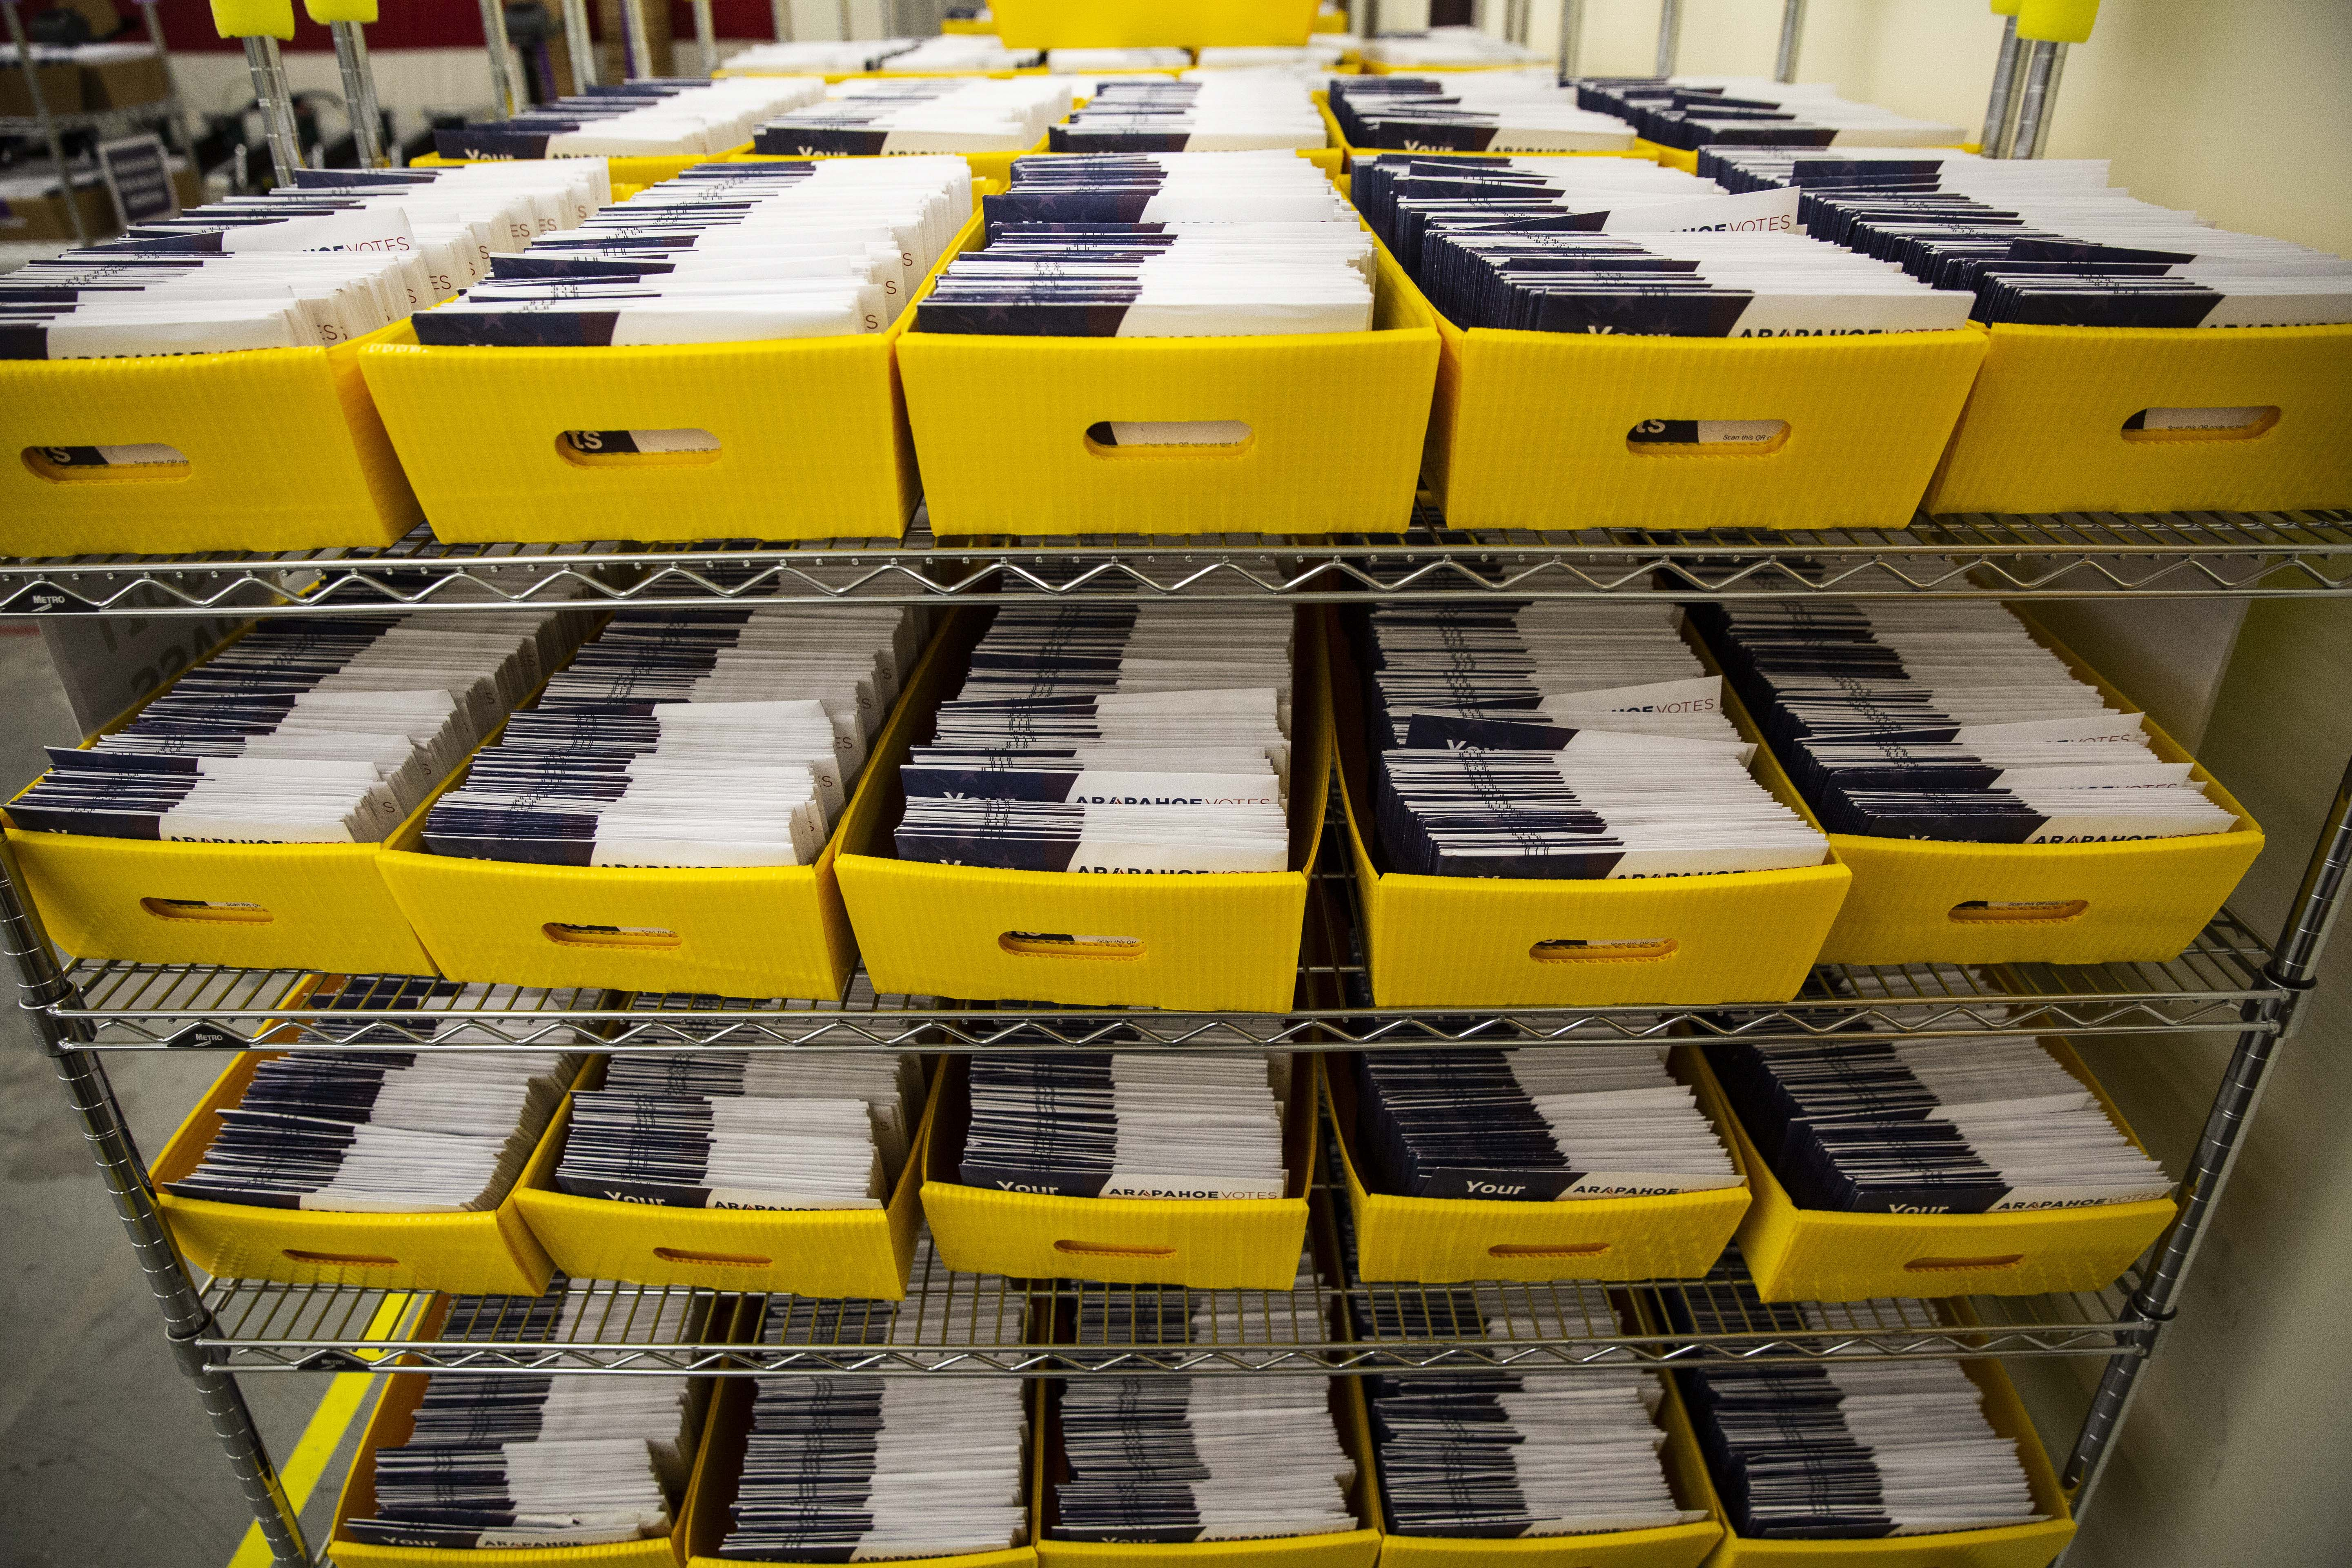 <p>Boxes of ballots atthe Arapahoe County Elections Facility in Littleton, Colorado, Tuesday, Oct. 30, 2018.</p>